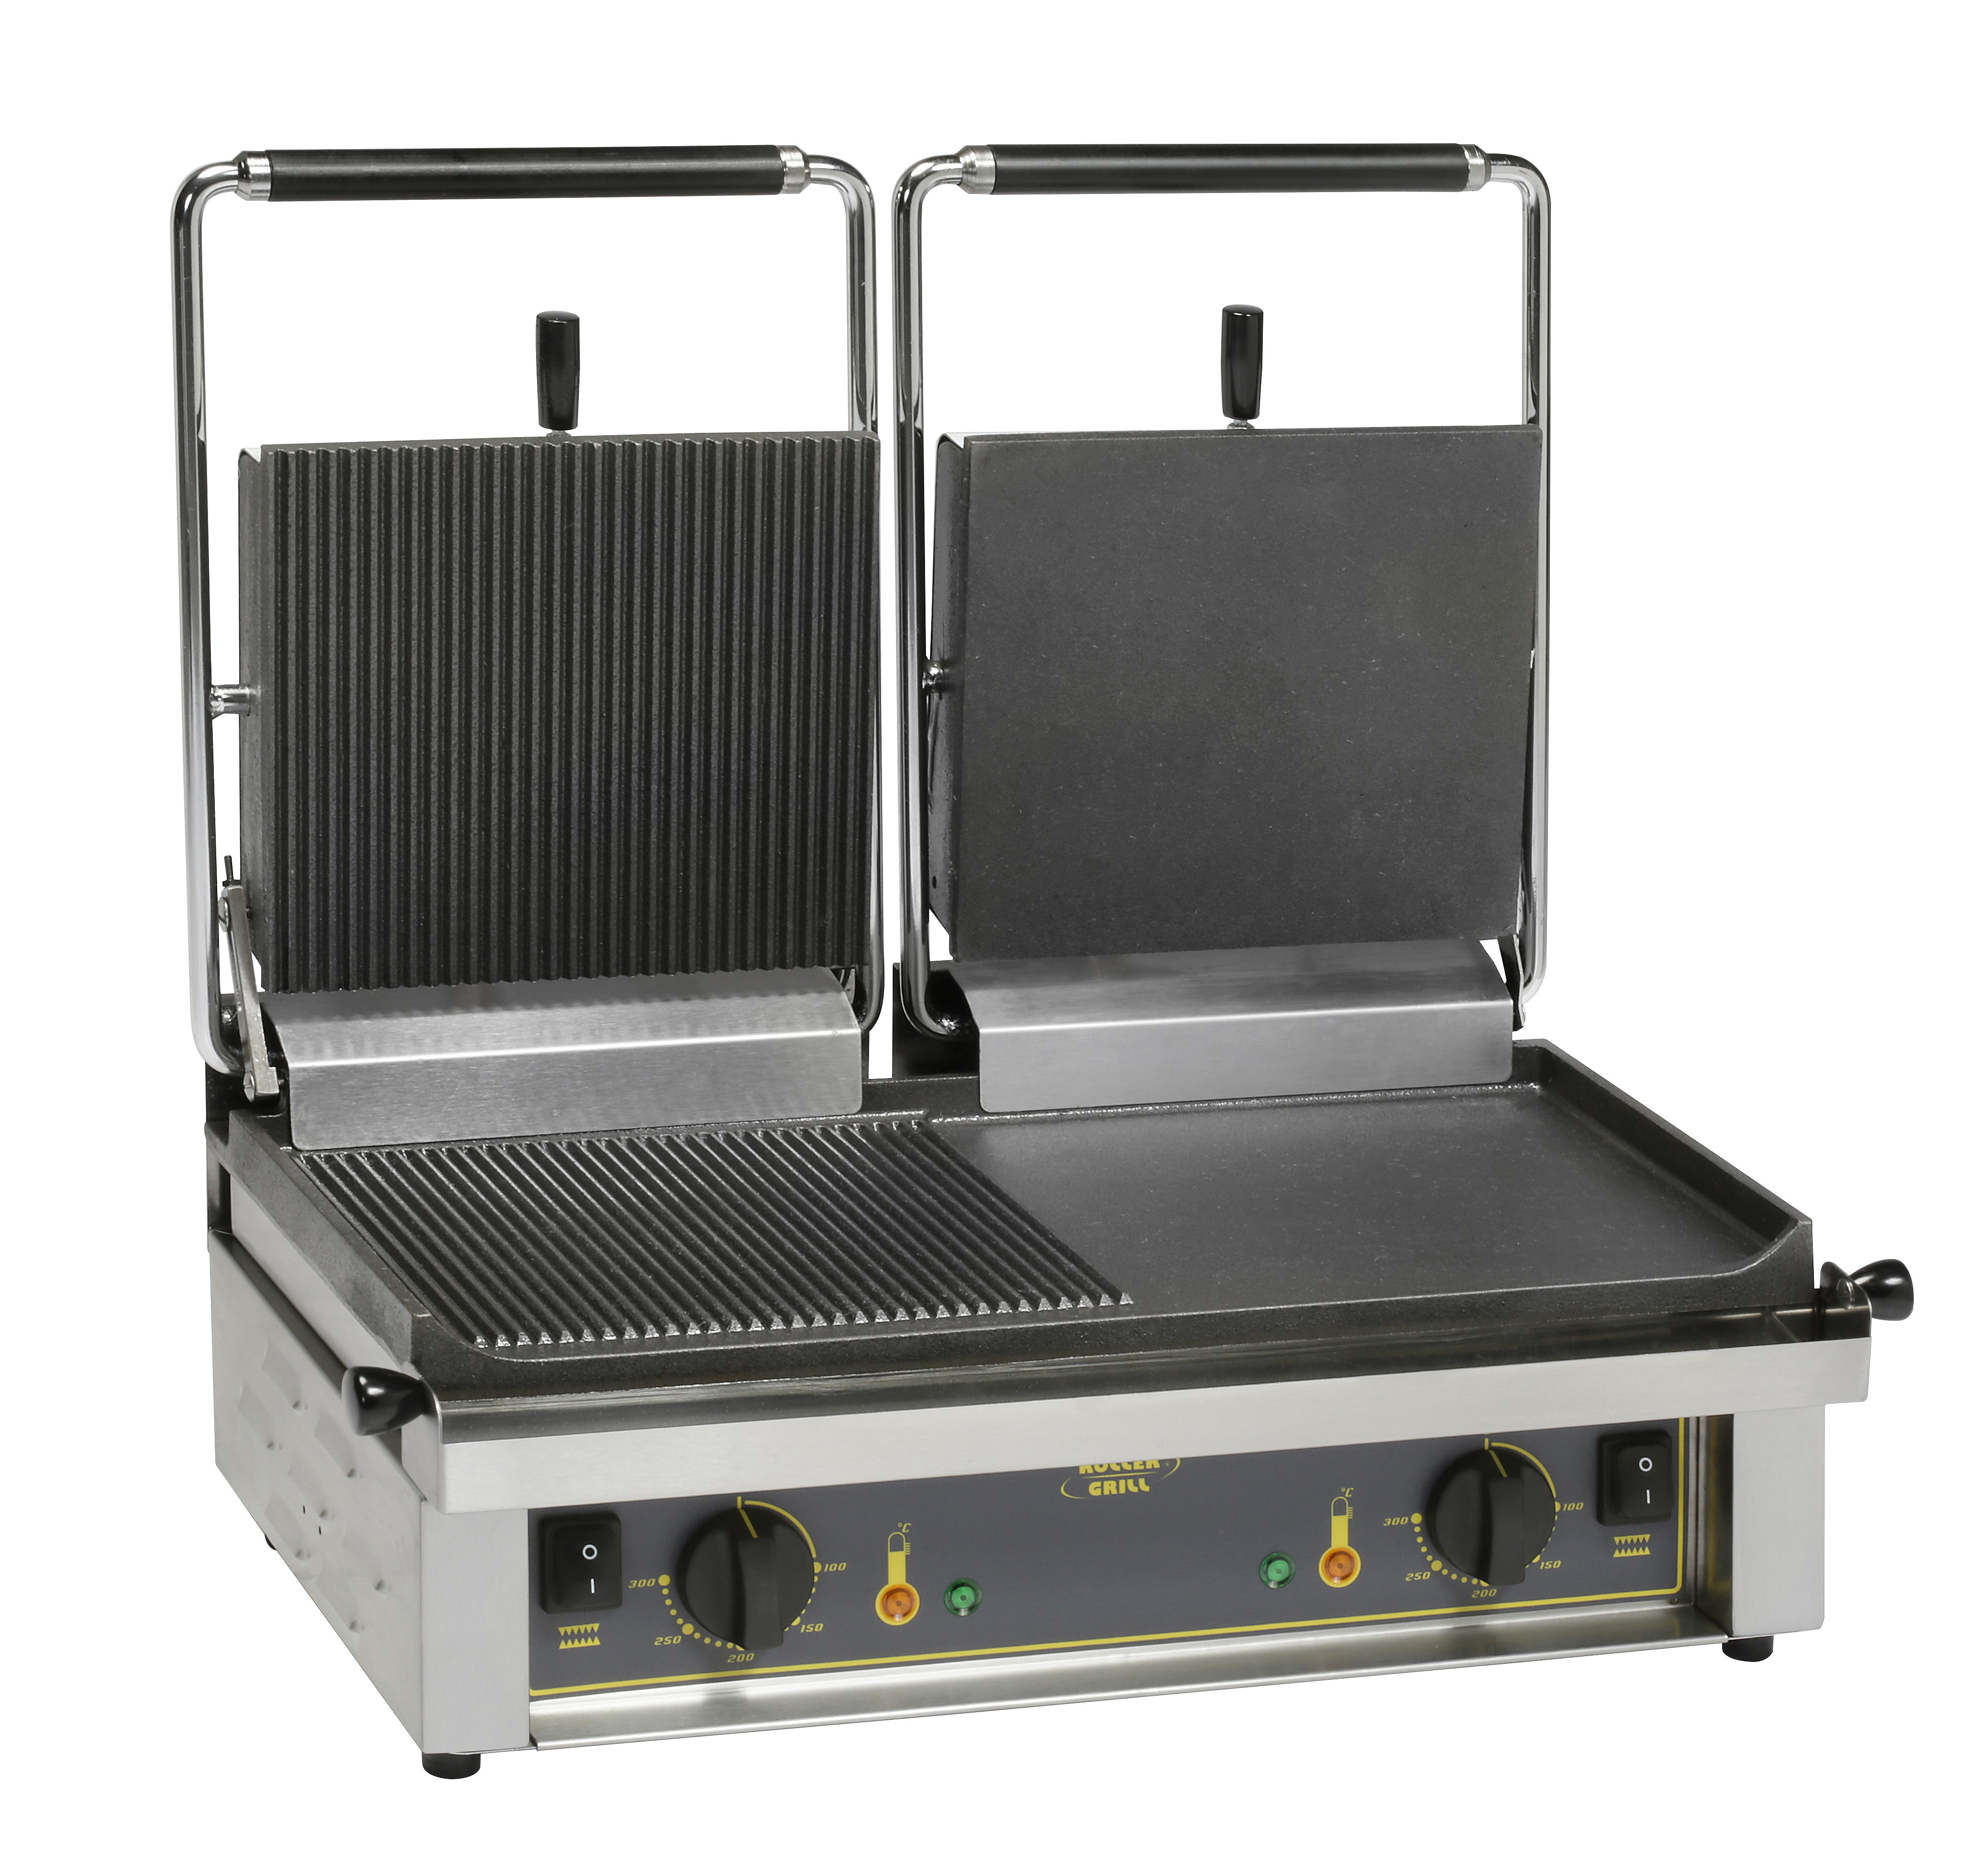 roller grill majestic vc r contact grill. Black Bedroom Furniture Sets. Home Design Ideas